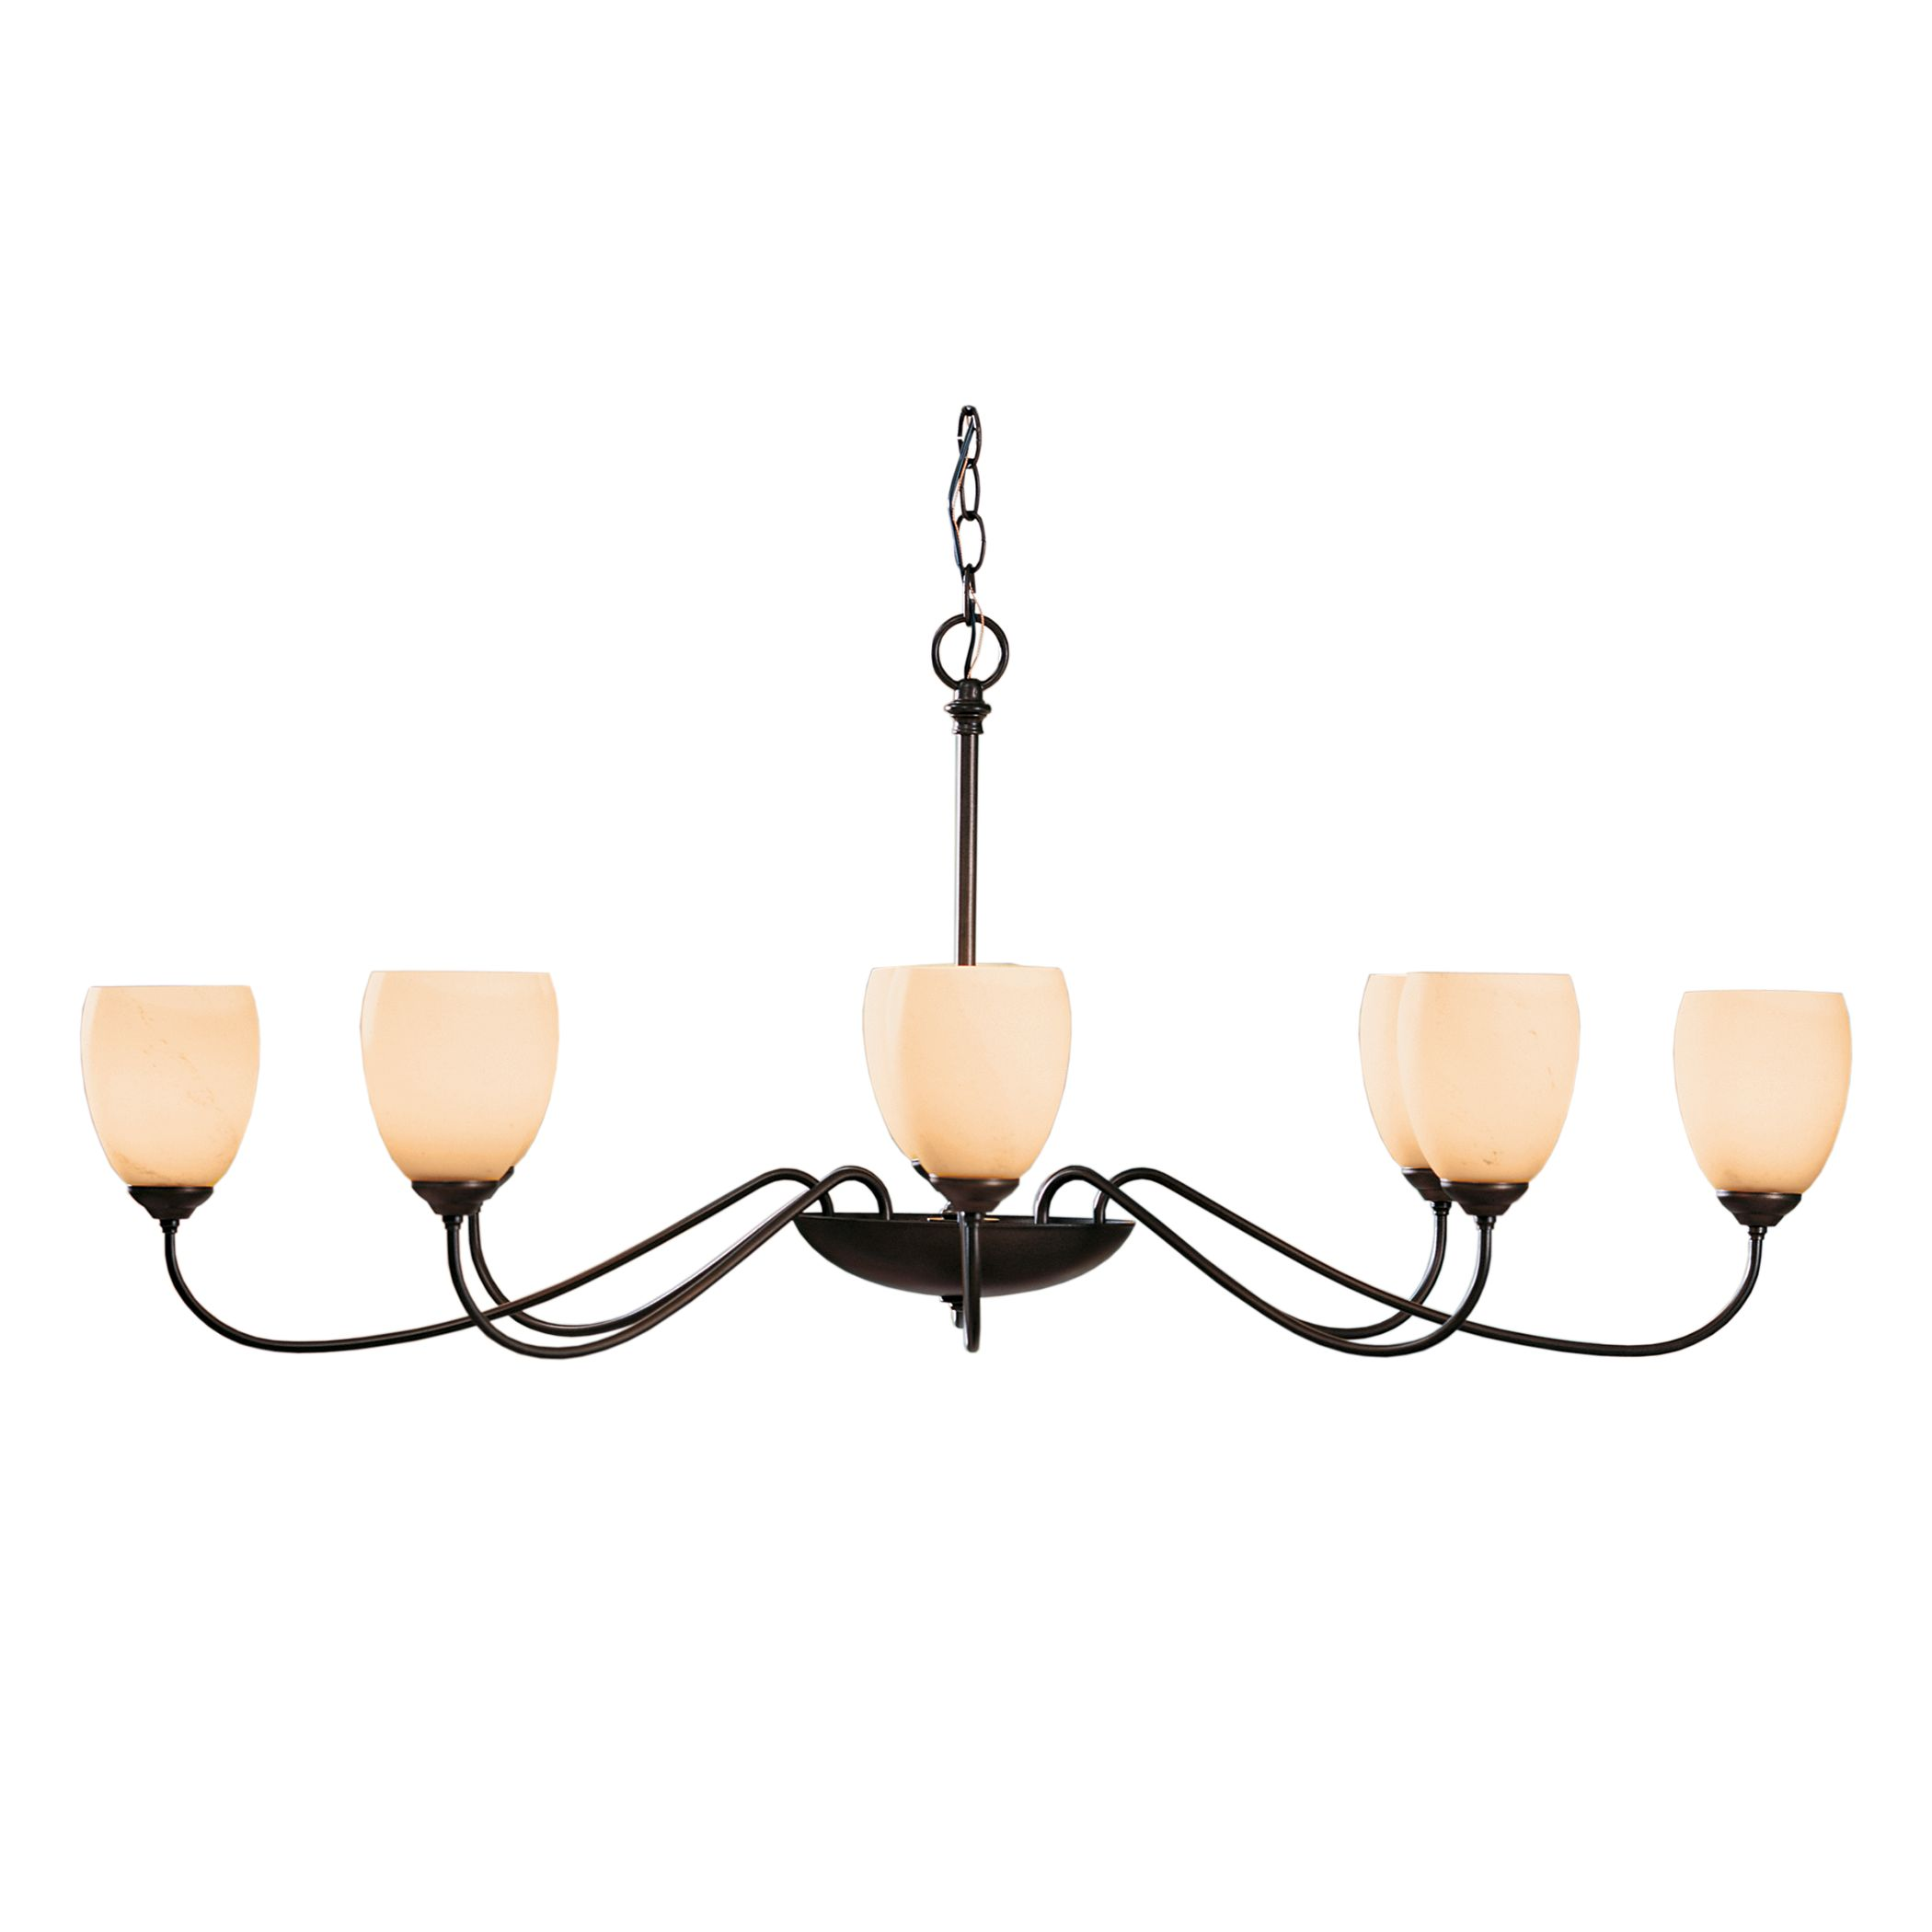 Thumbnail for Oval Large 8 Arm Chandelier